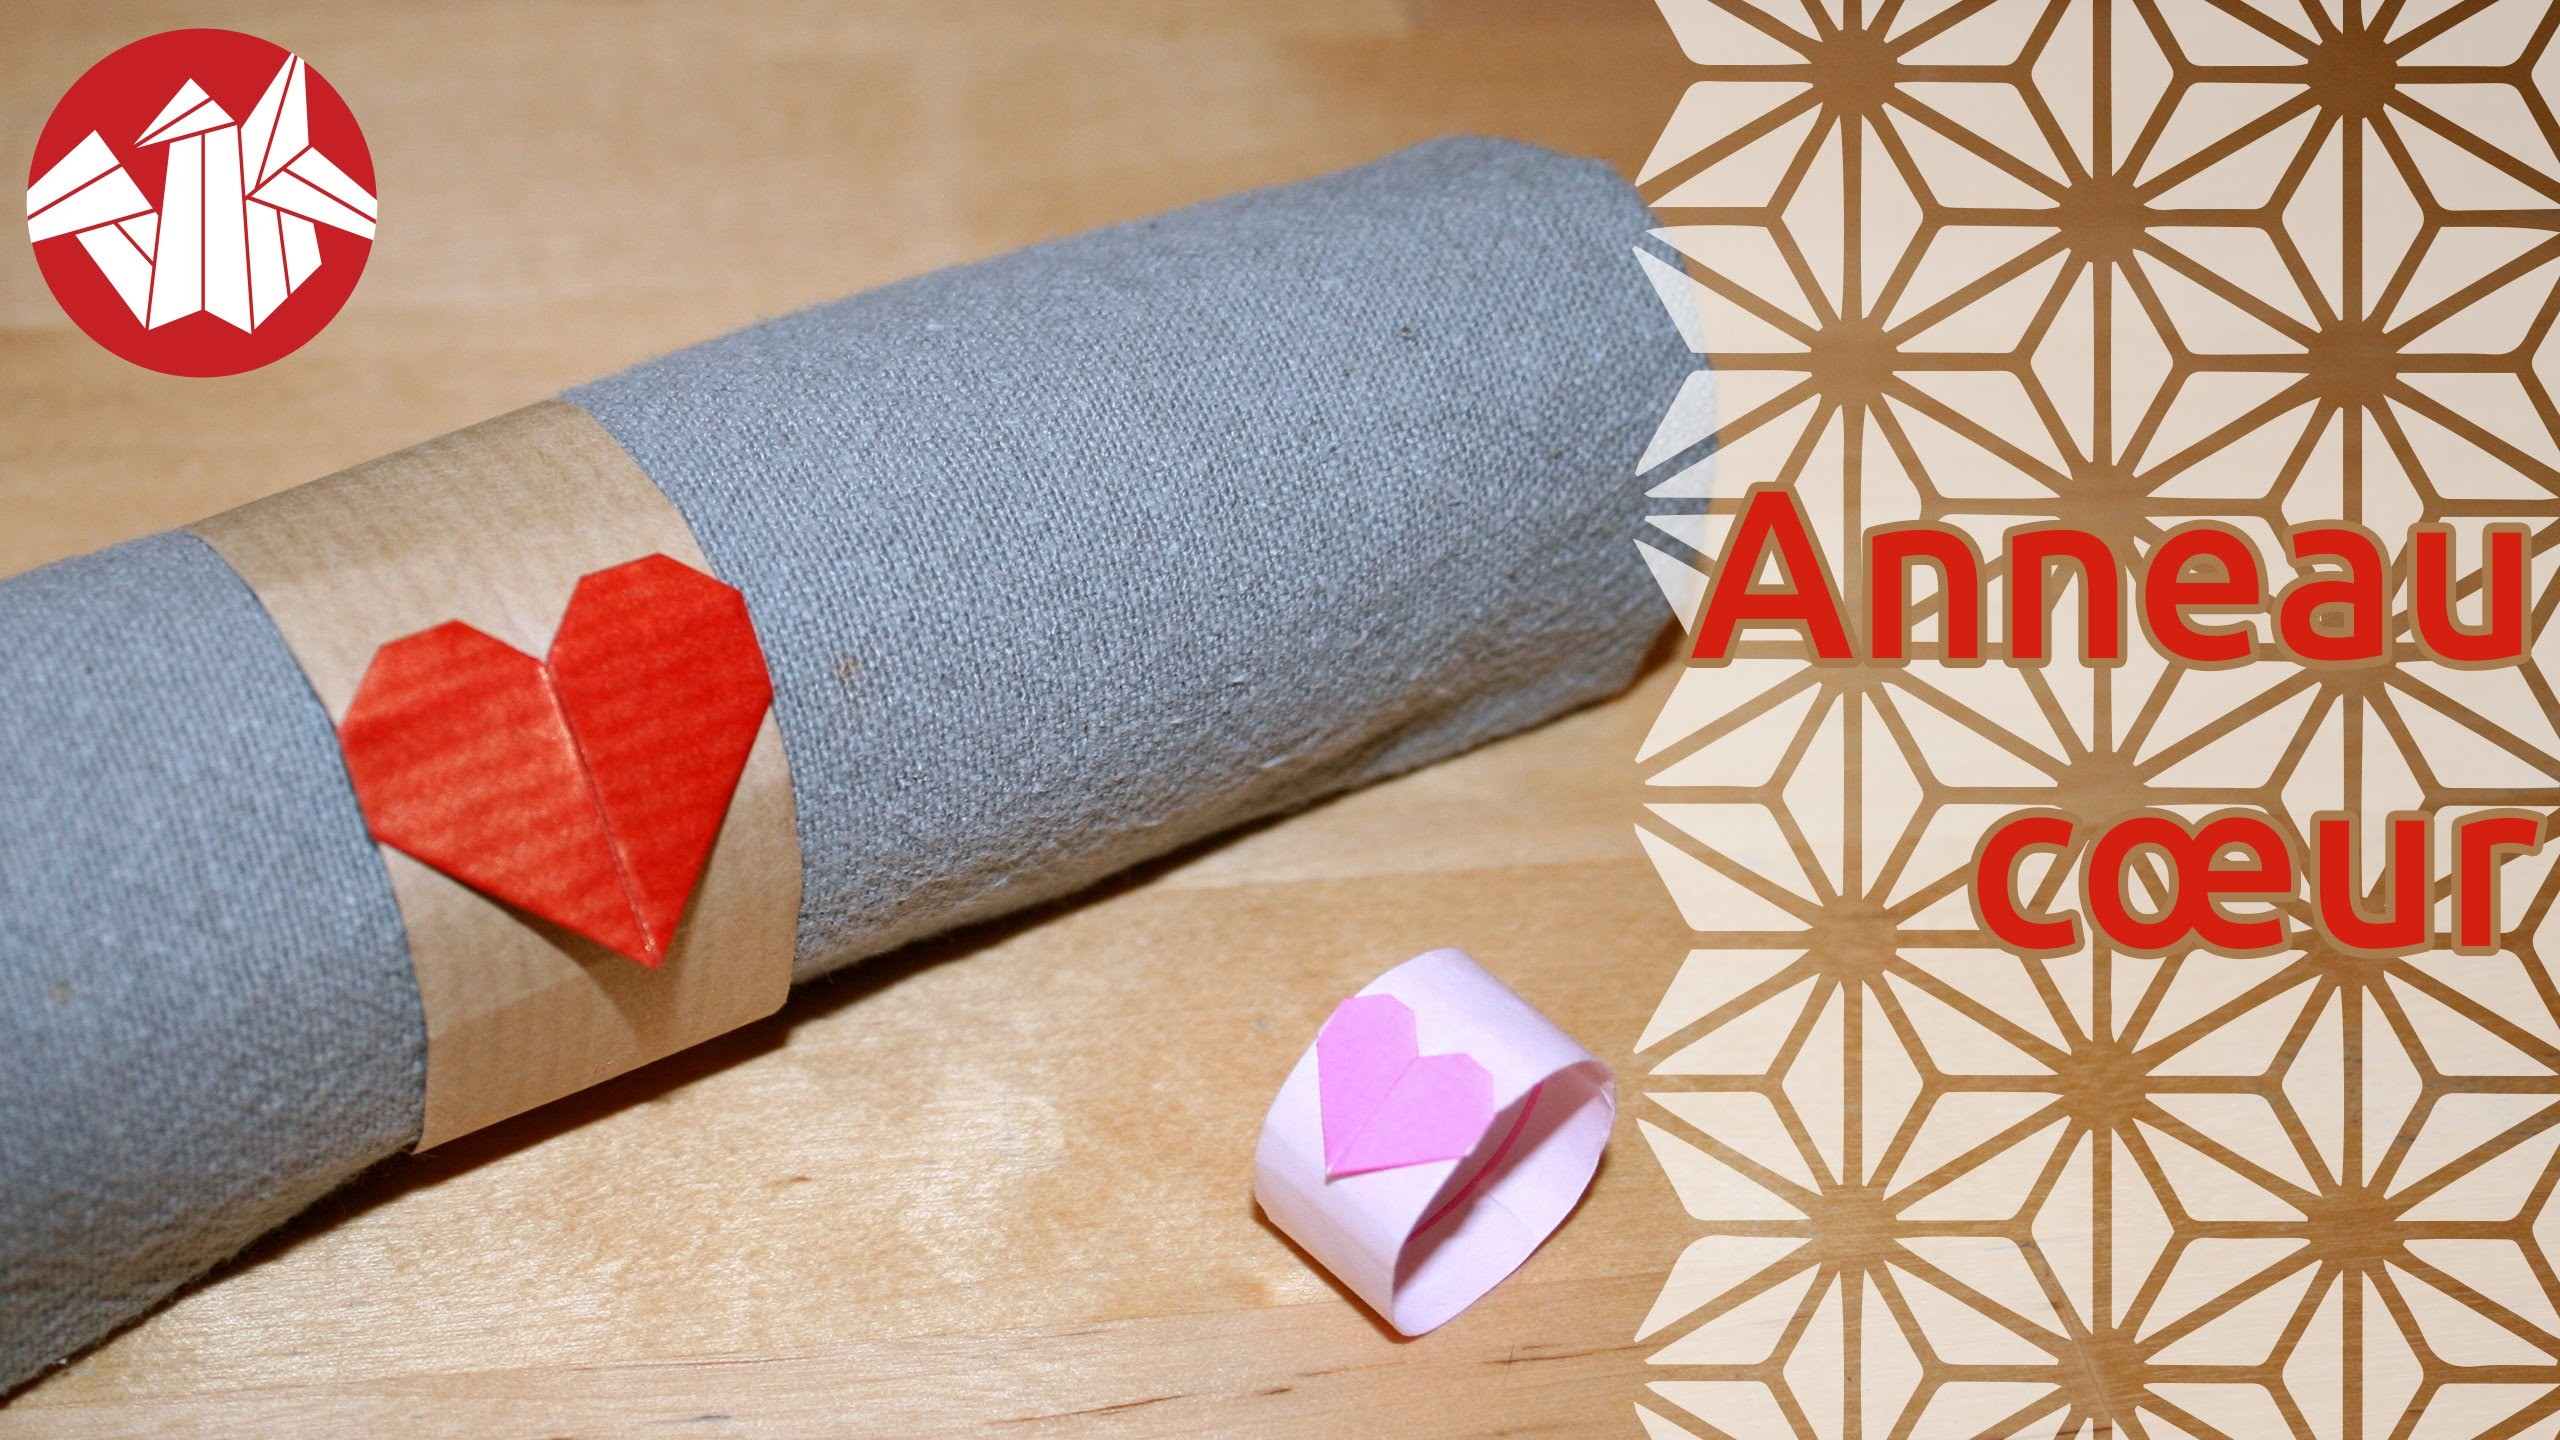 Origami - Anneau coeur - Heart Ring [Senbazuru] - photo#34